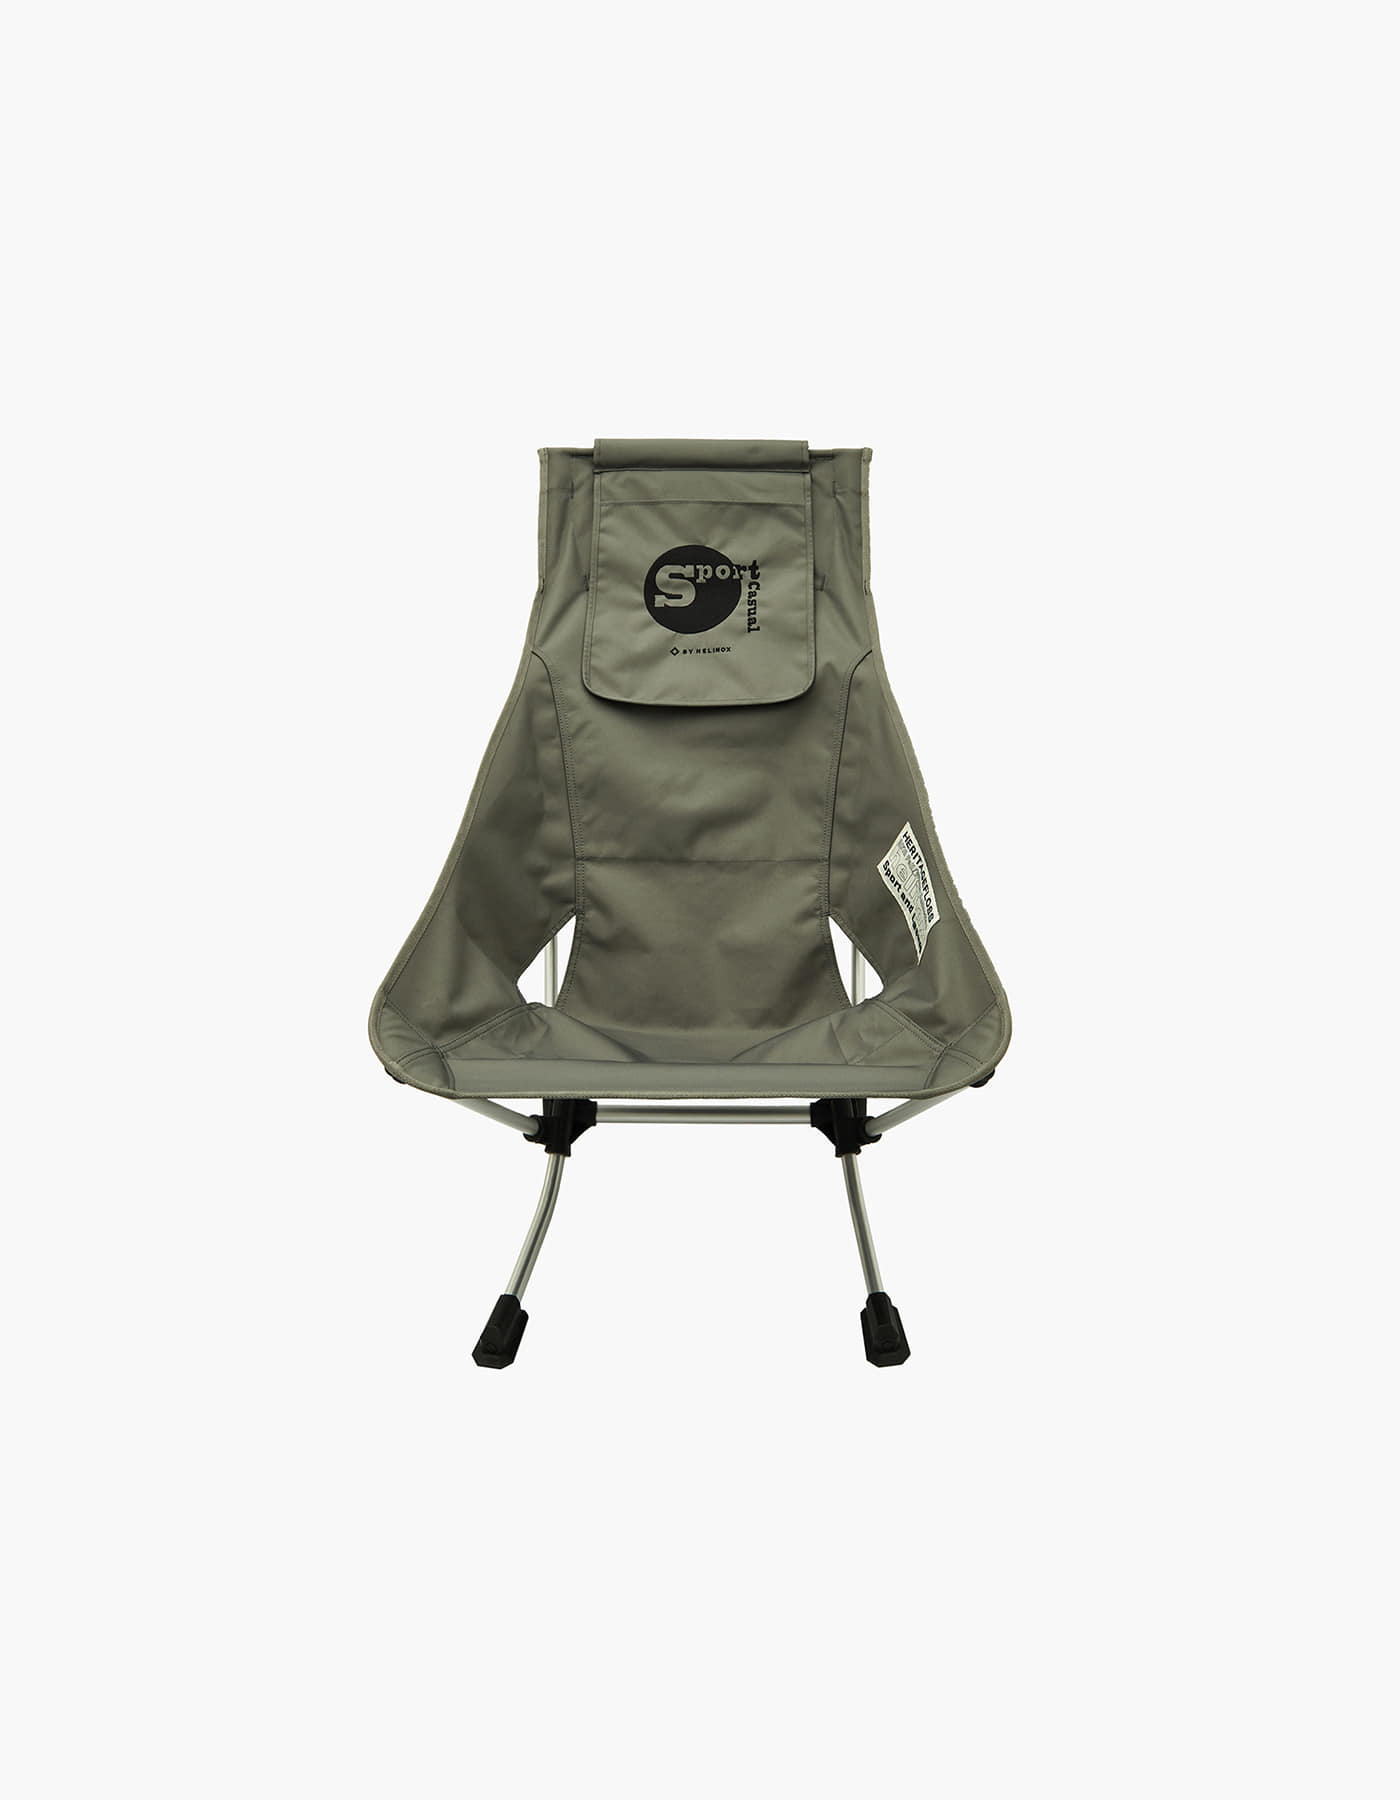 HELINOX X HERITAGEFLOSS BEACH CHAIR / FOLIAGE GREEN